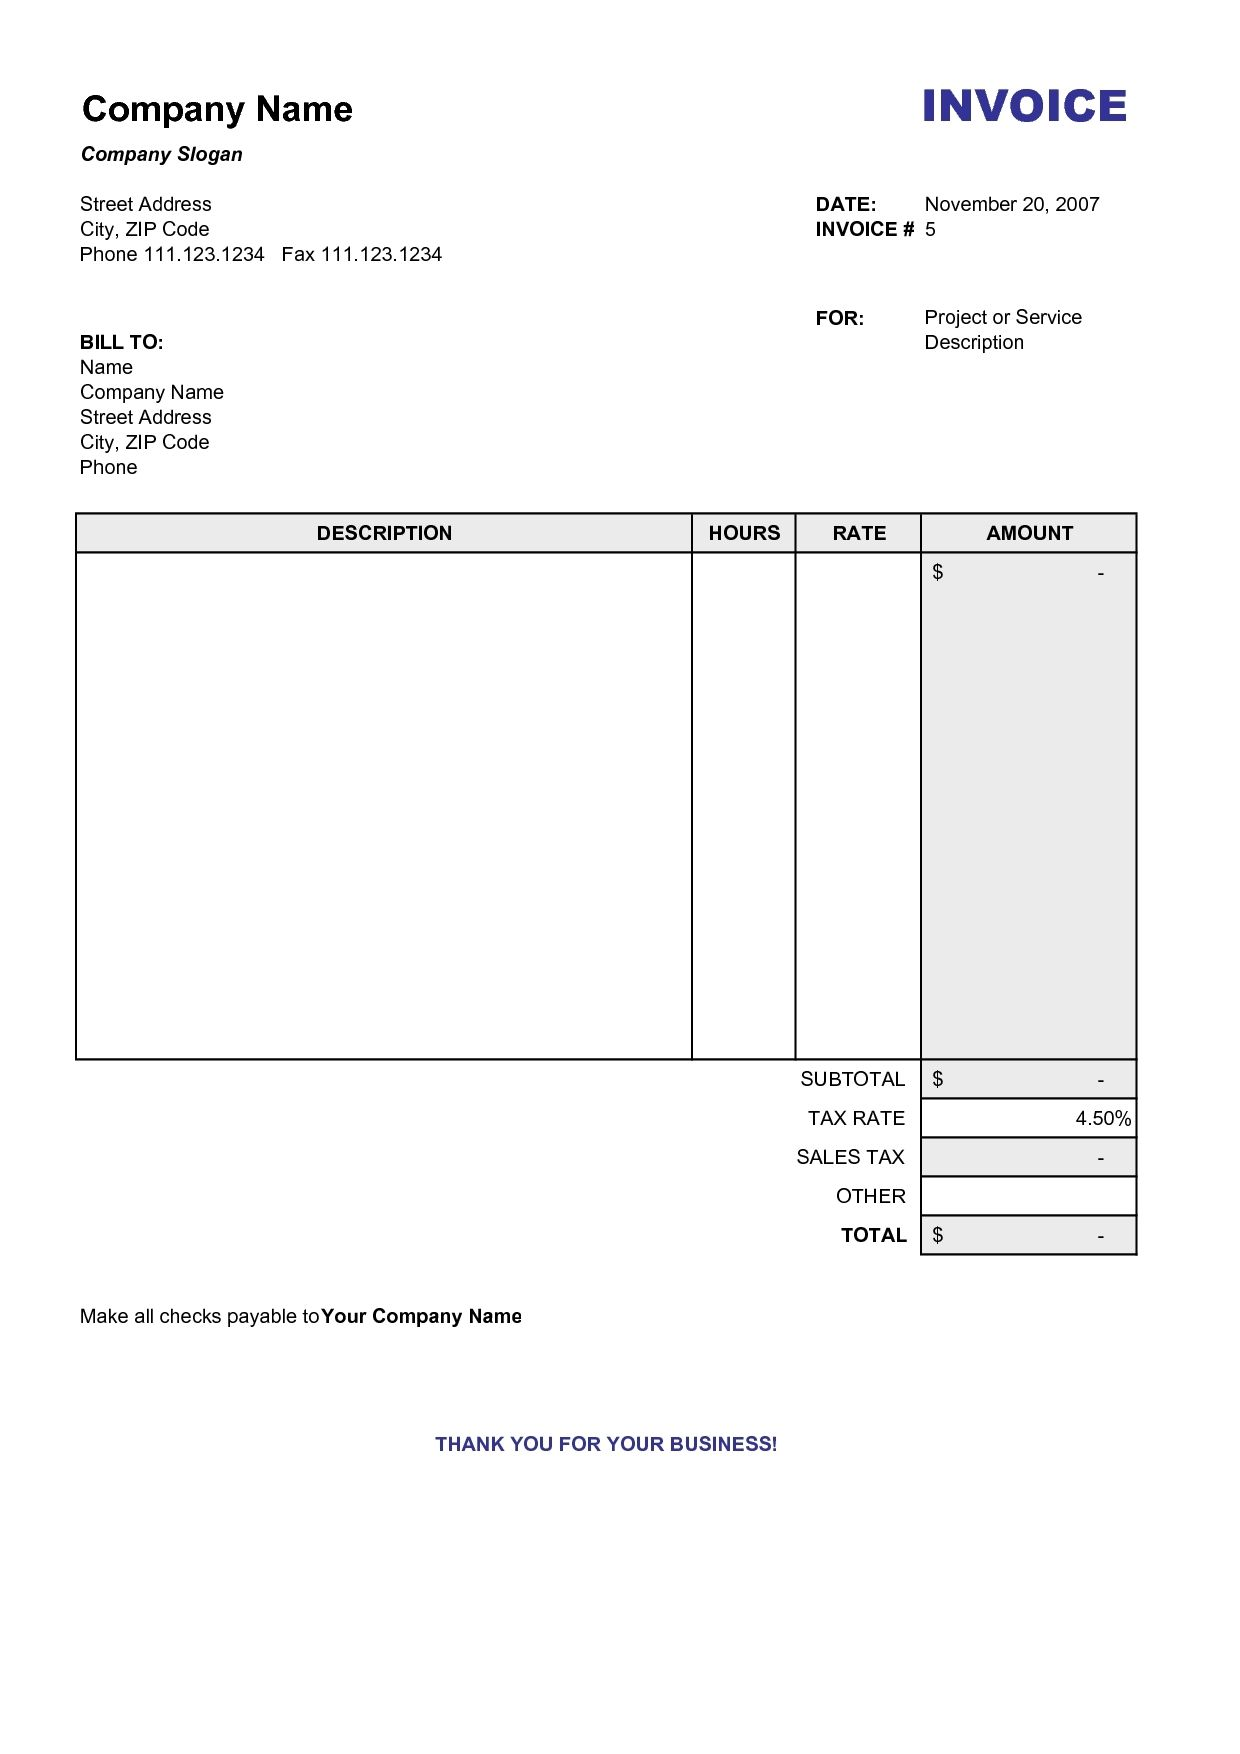 Copy Of A Blank Invoice Invoice Template Free Copy Of Blank - Free word document invoice template for service business